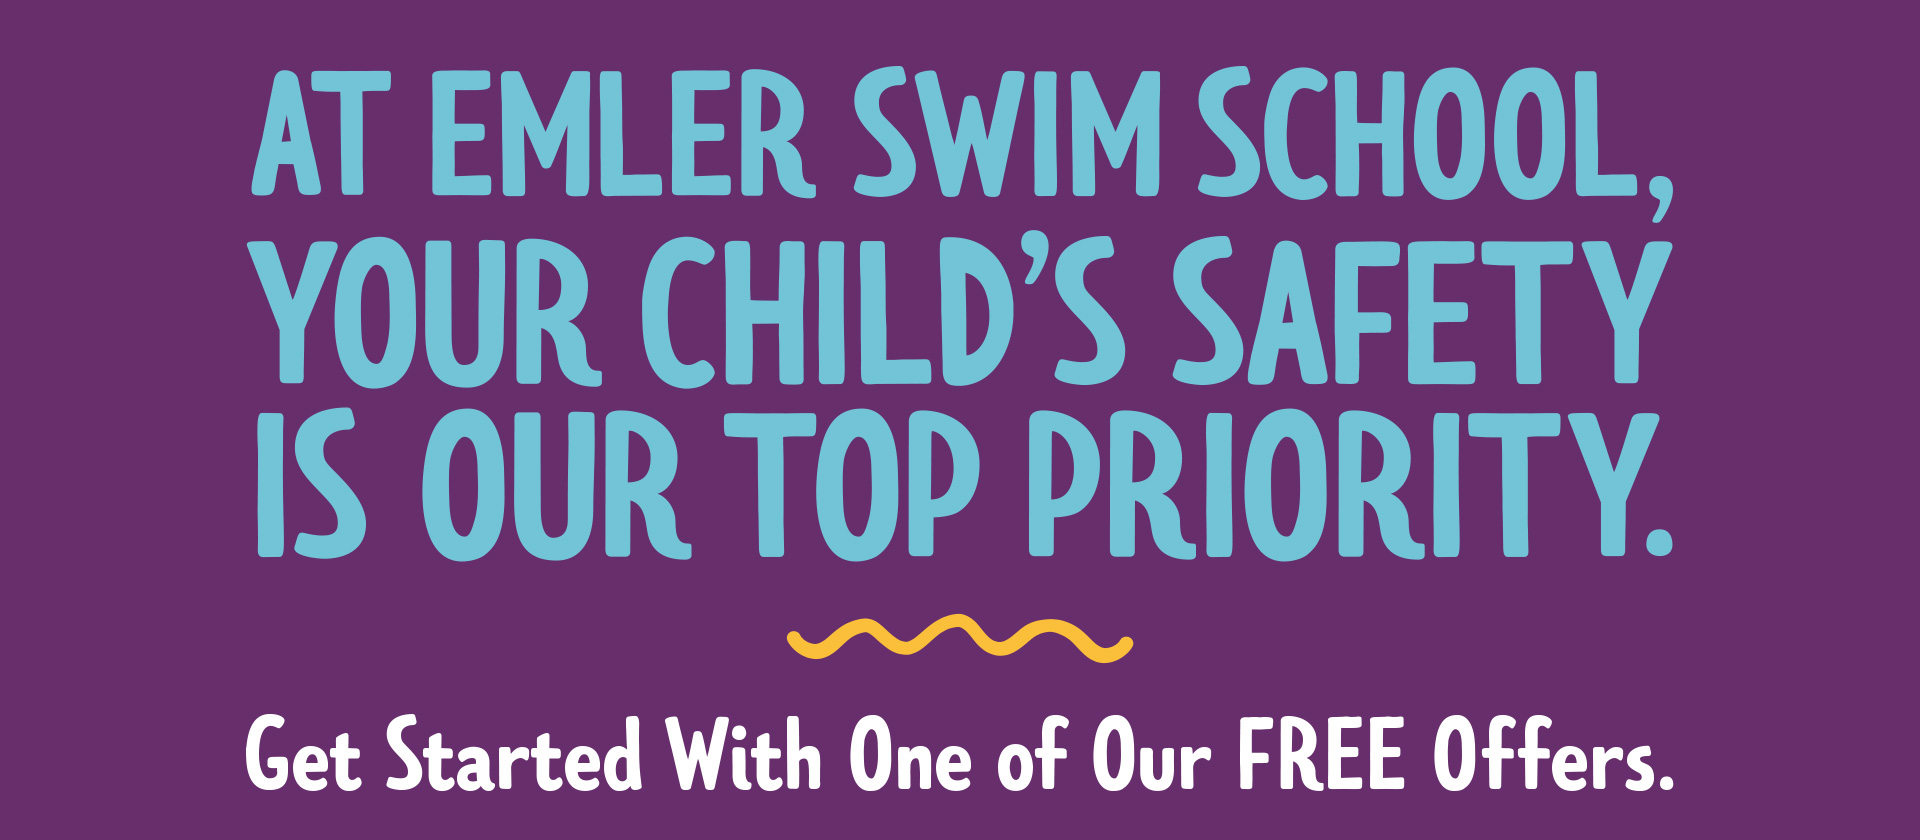 Your child's safety is our top priority